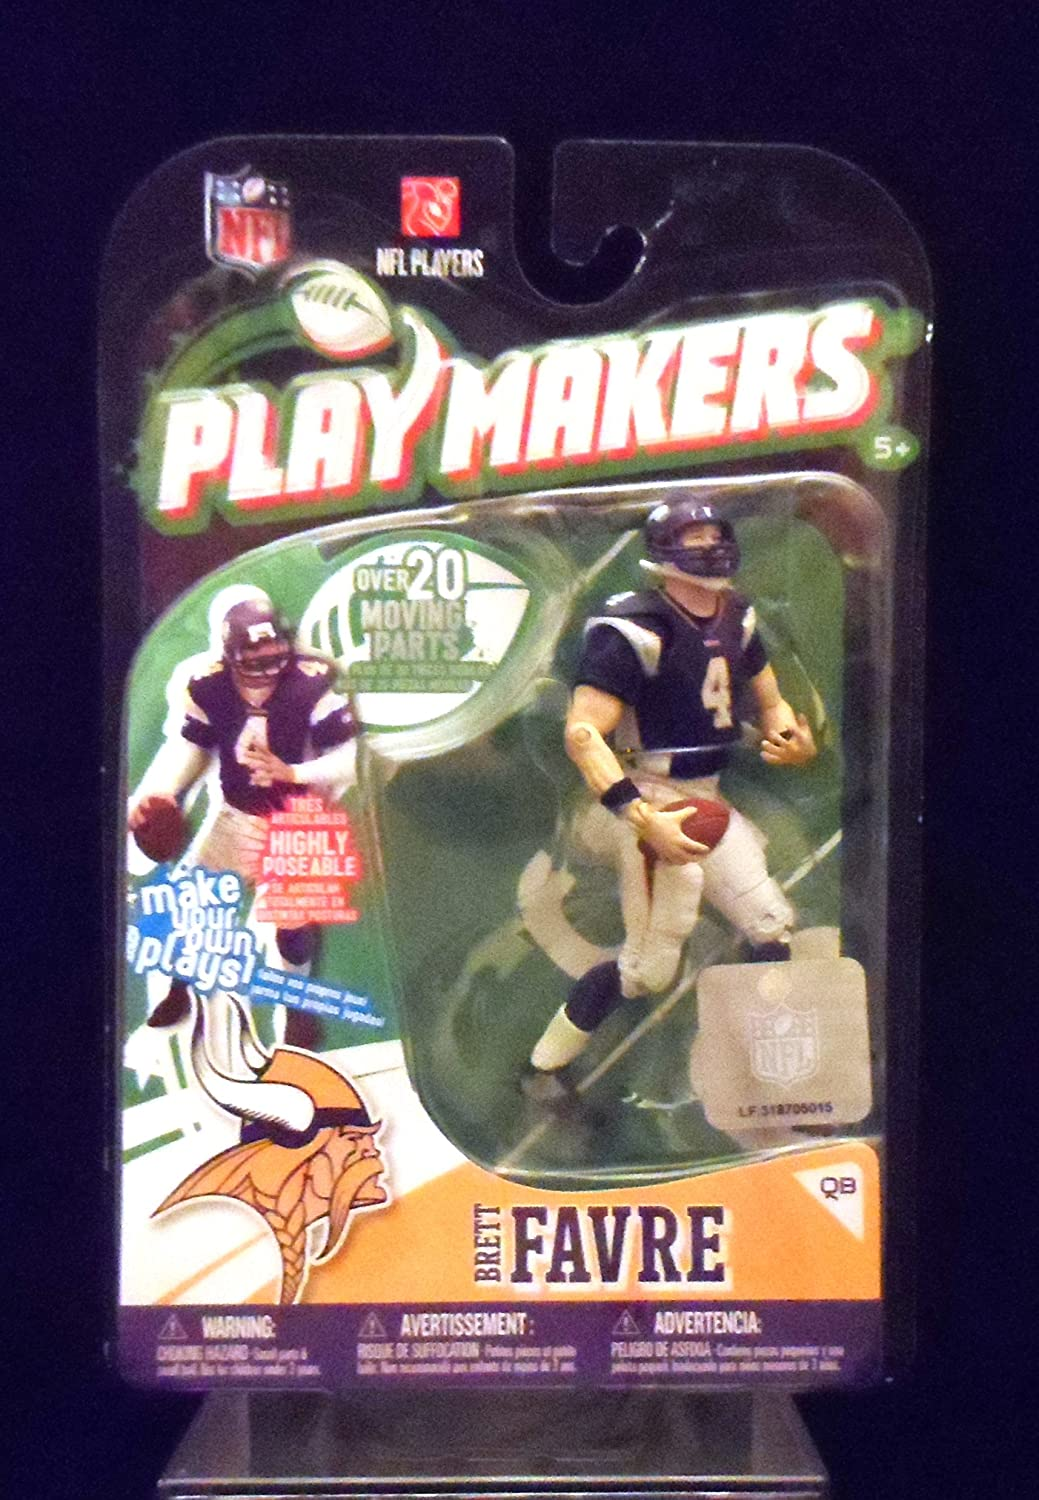 NFL McFarlane Toys Playmakers Series 1 Action Figure Brett Favre (Minnesota Vikings)